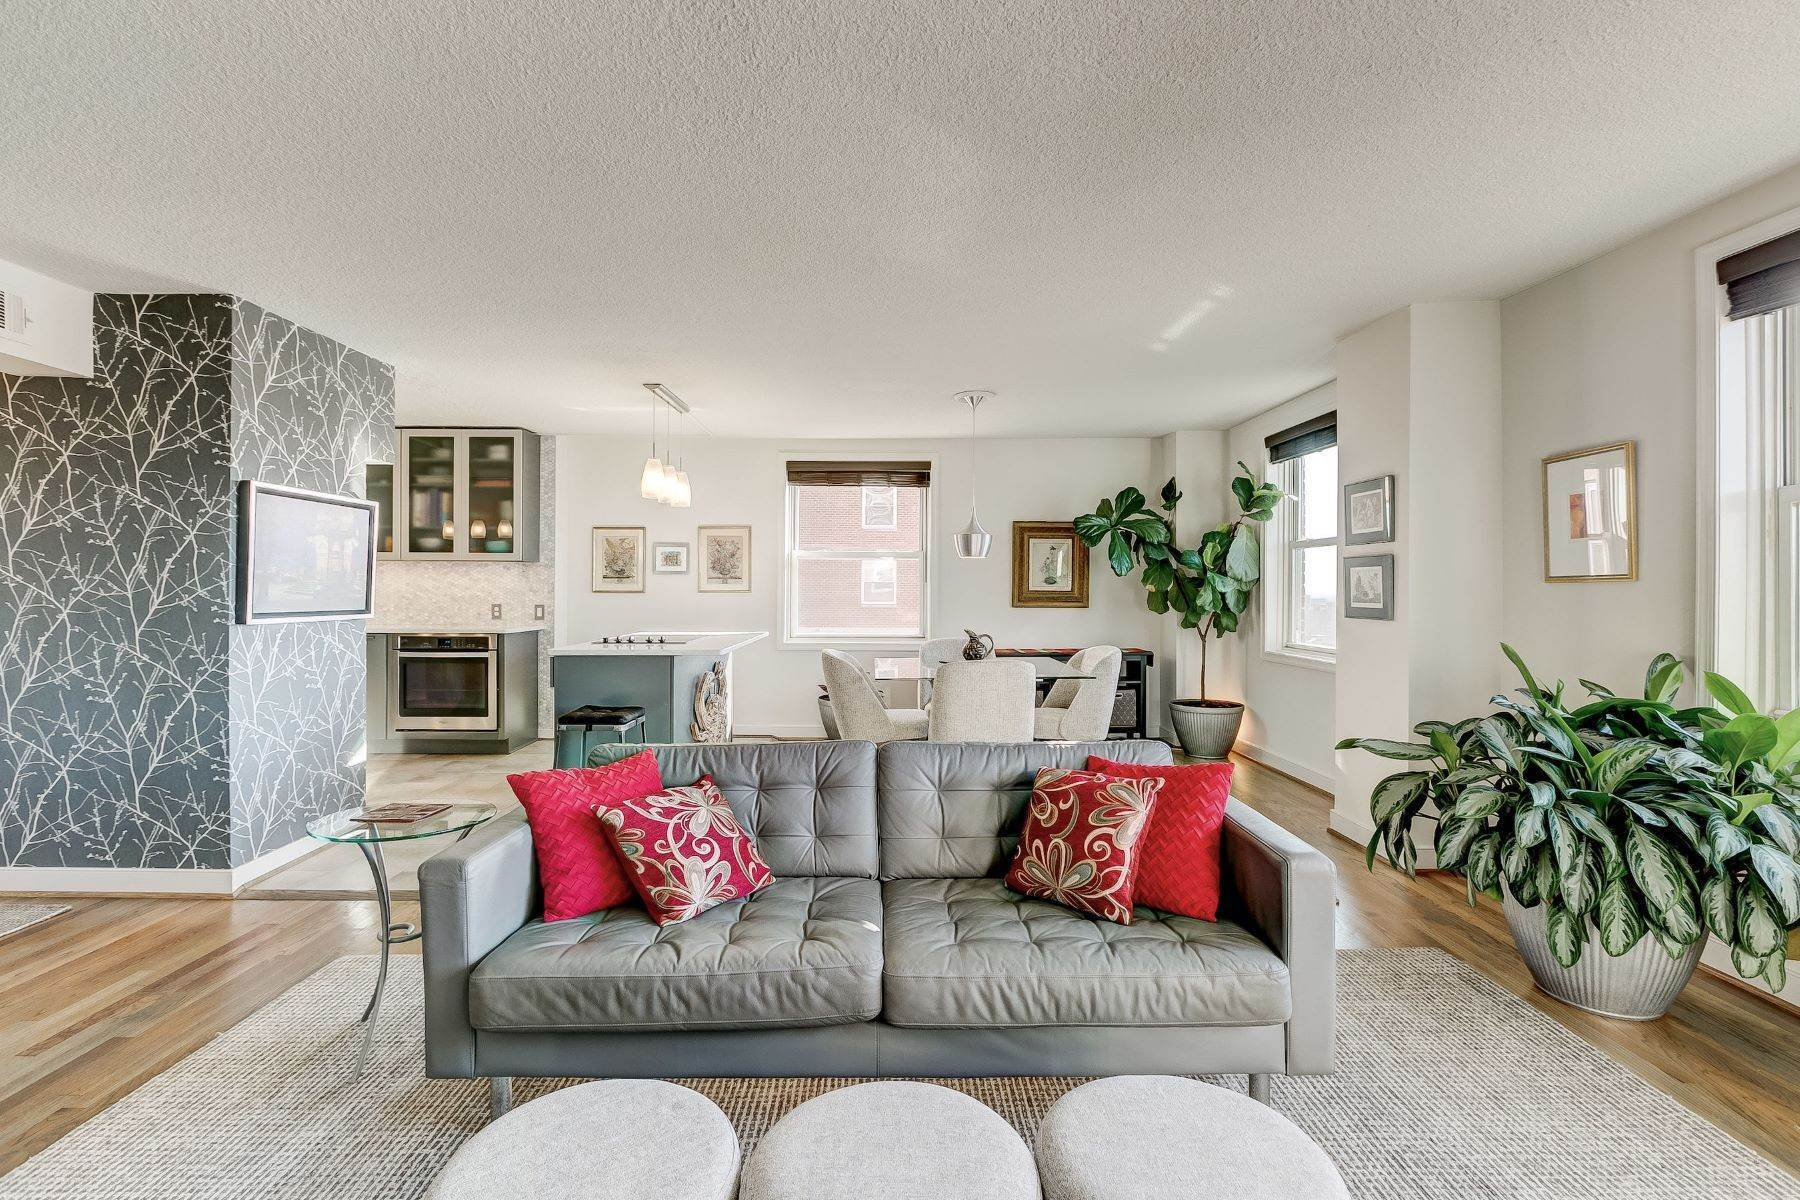 Single Family Homes for Sale at Elegantly Updated Vibrant Condominium 1101 Saint Paul Street, 1907 Baltimore, Maryland 21202 United States